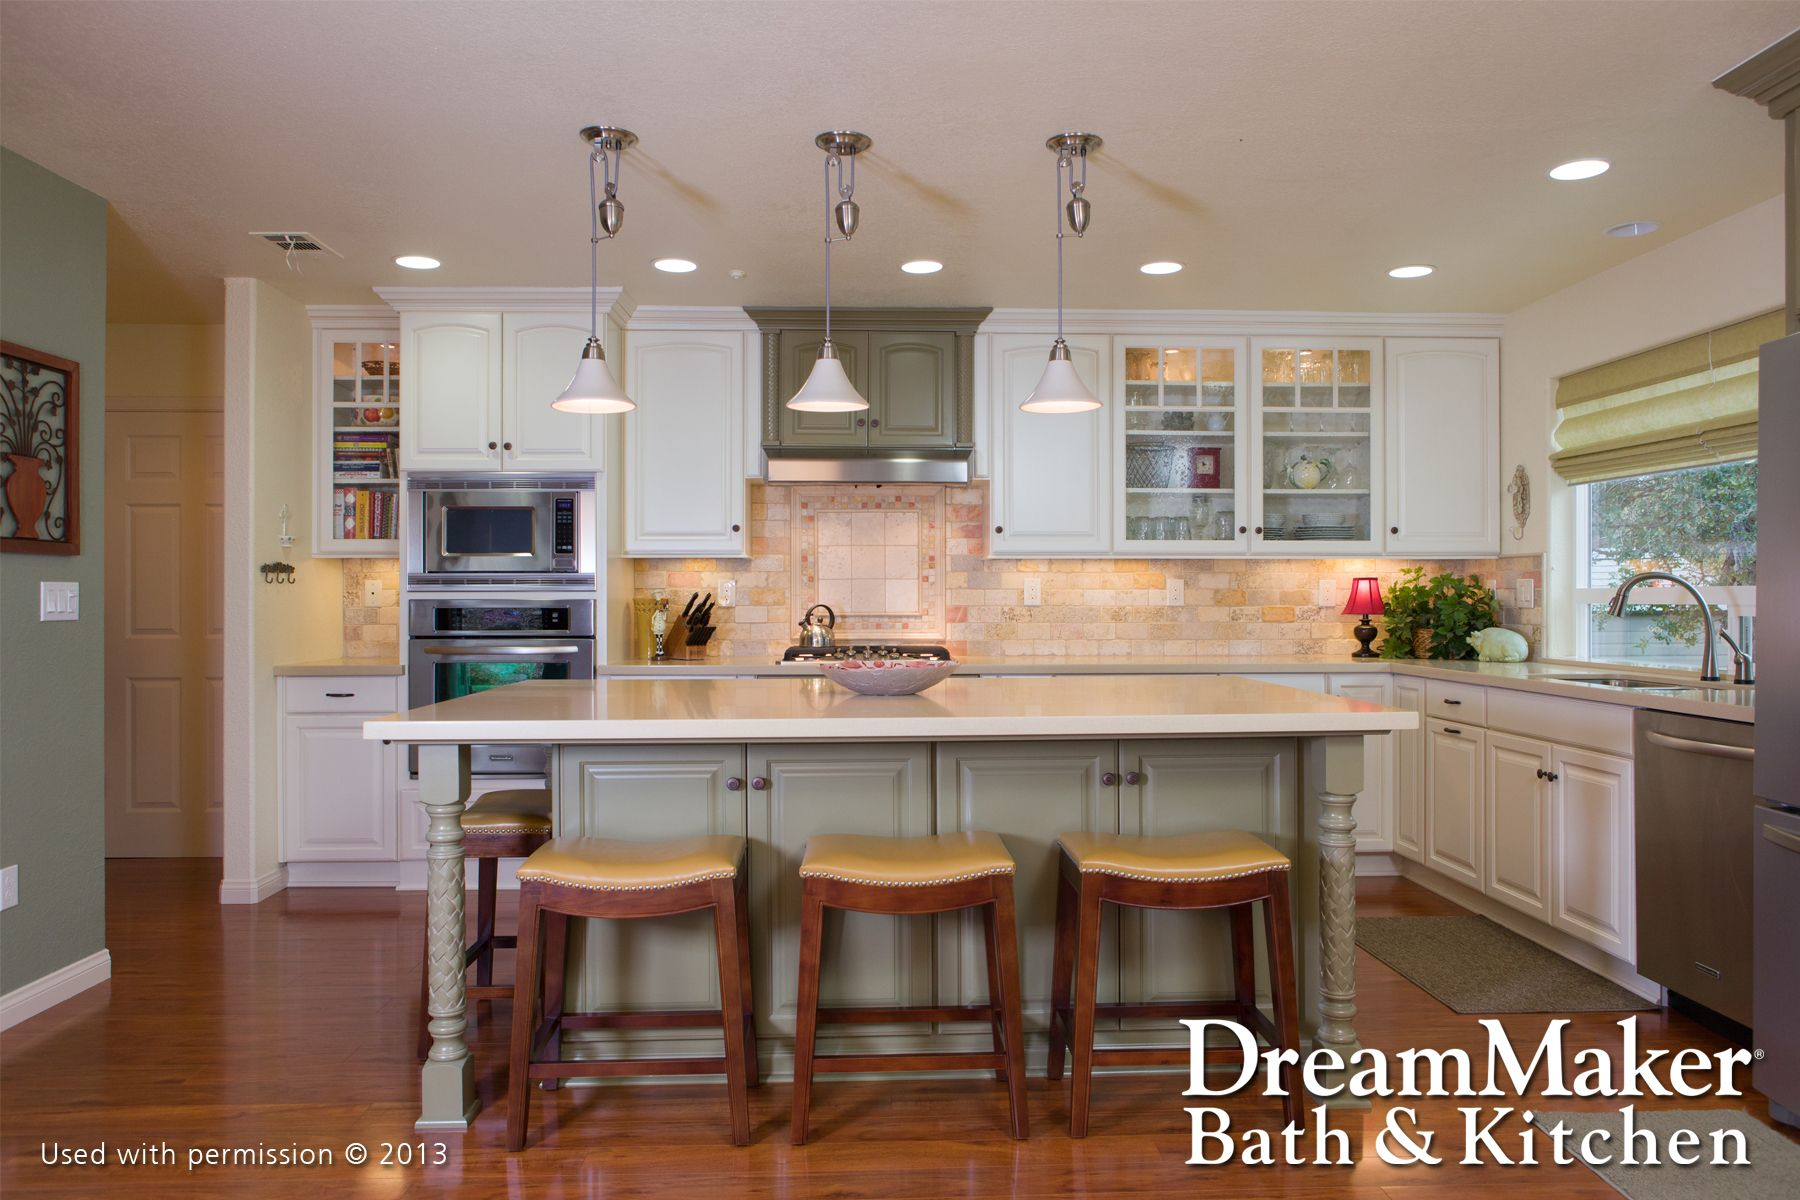 DreamMaker Mid-Ohio Kitchen Remodeling Tips and Tricks   Remodeling ...